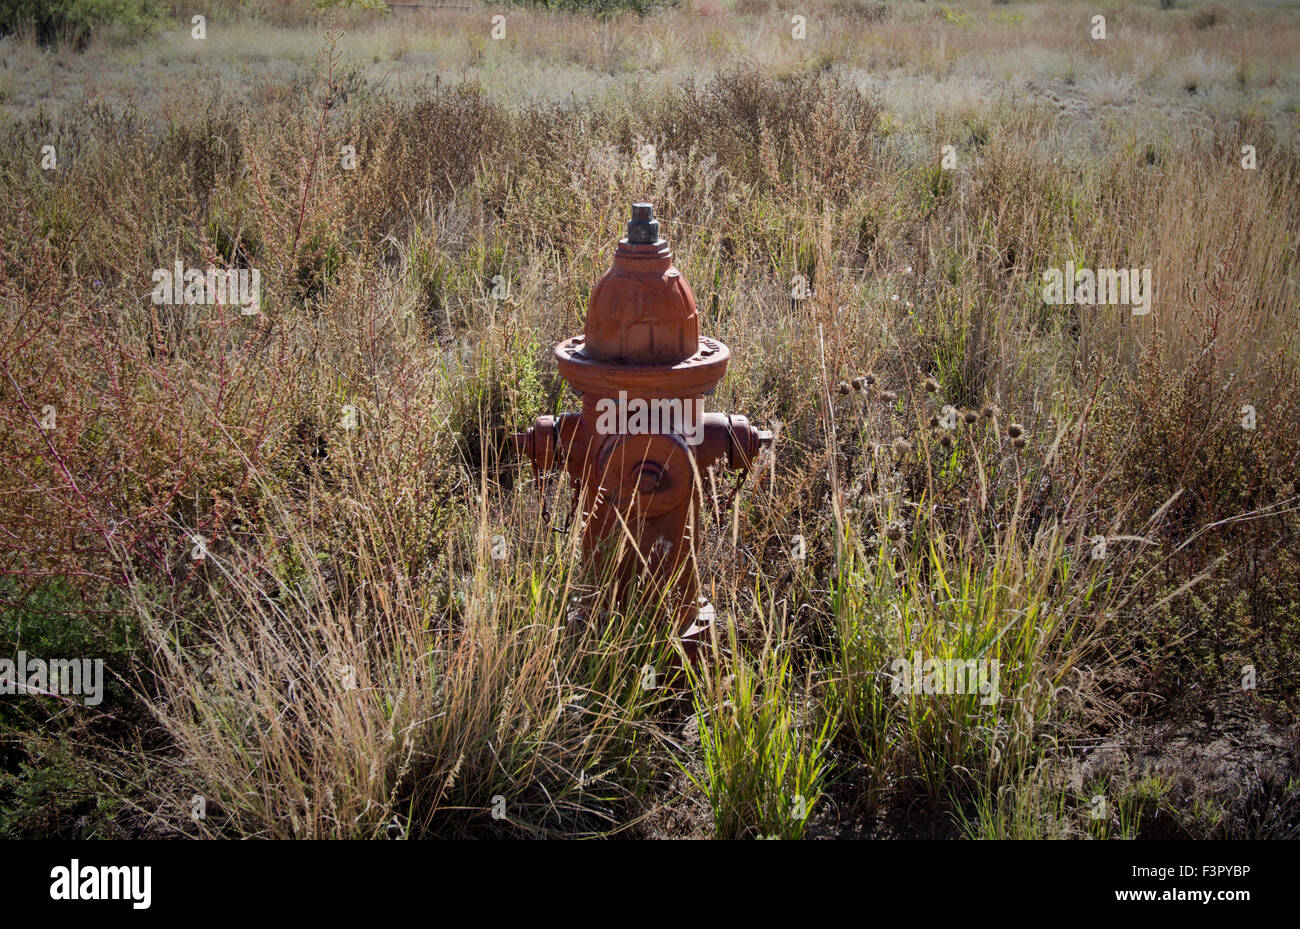 Fire hydrant in neglected environment in West Texas - Stock Image